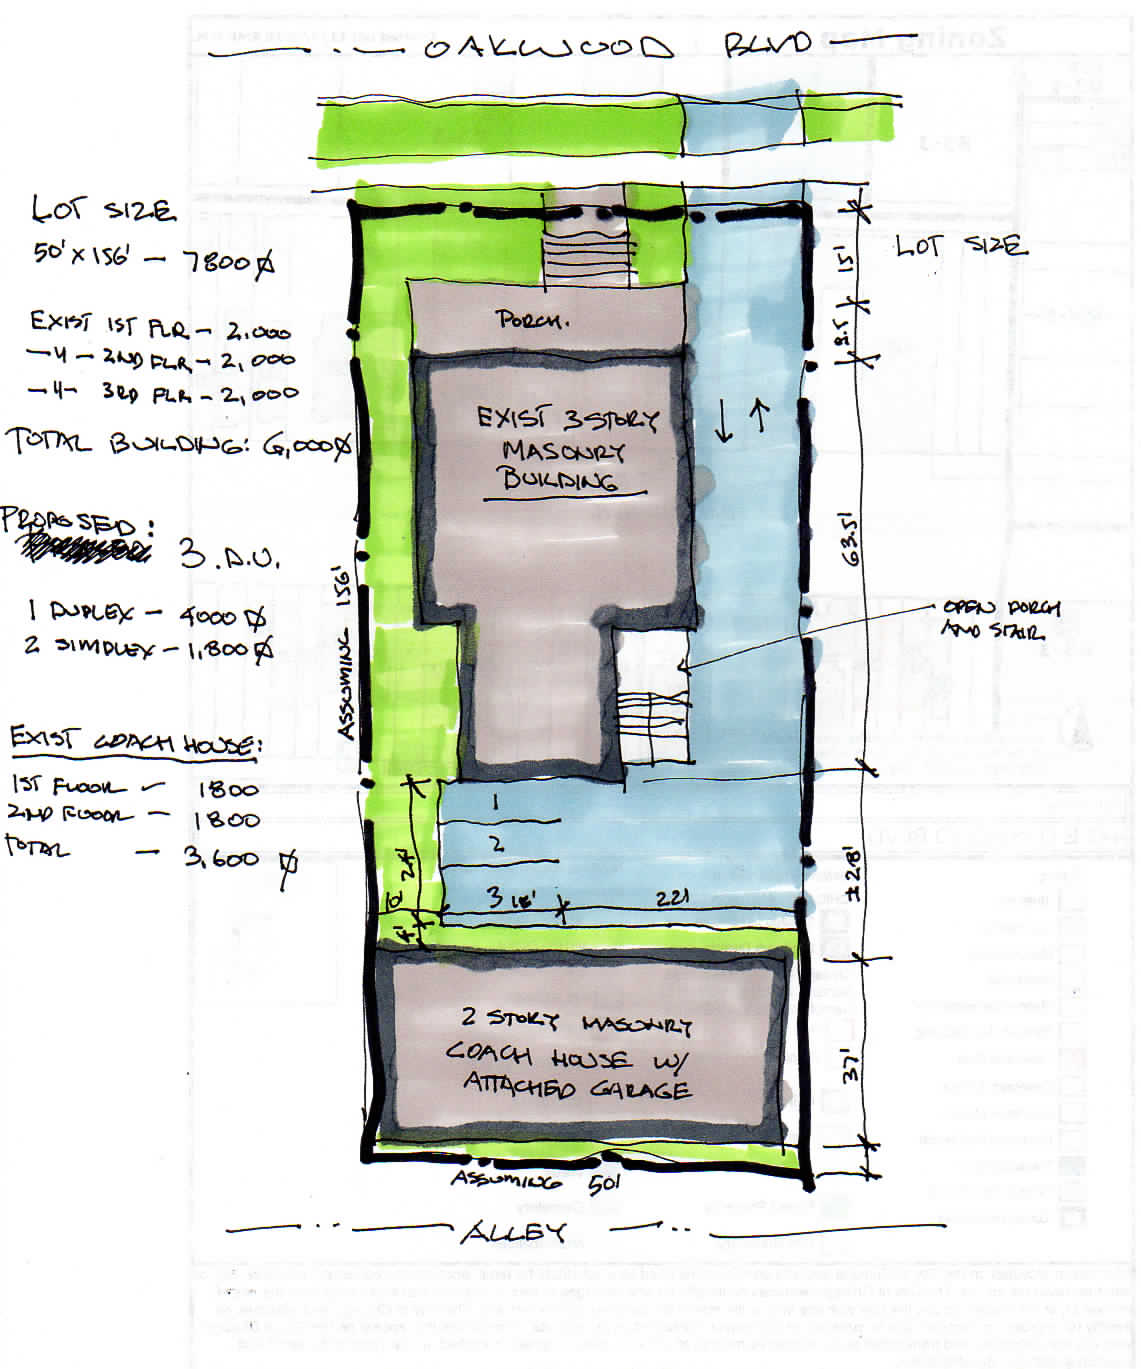 442-e-oakwood_site-plan